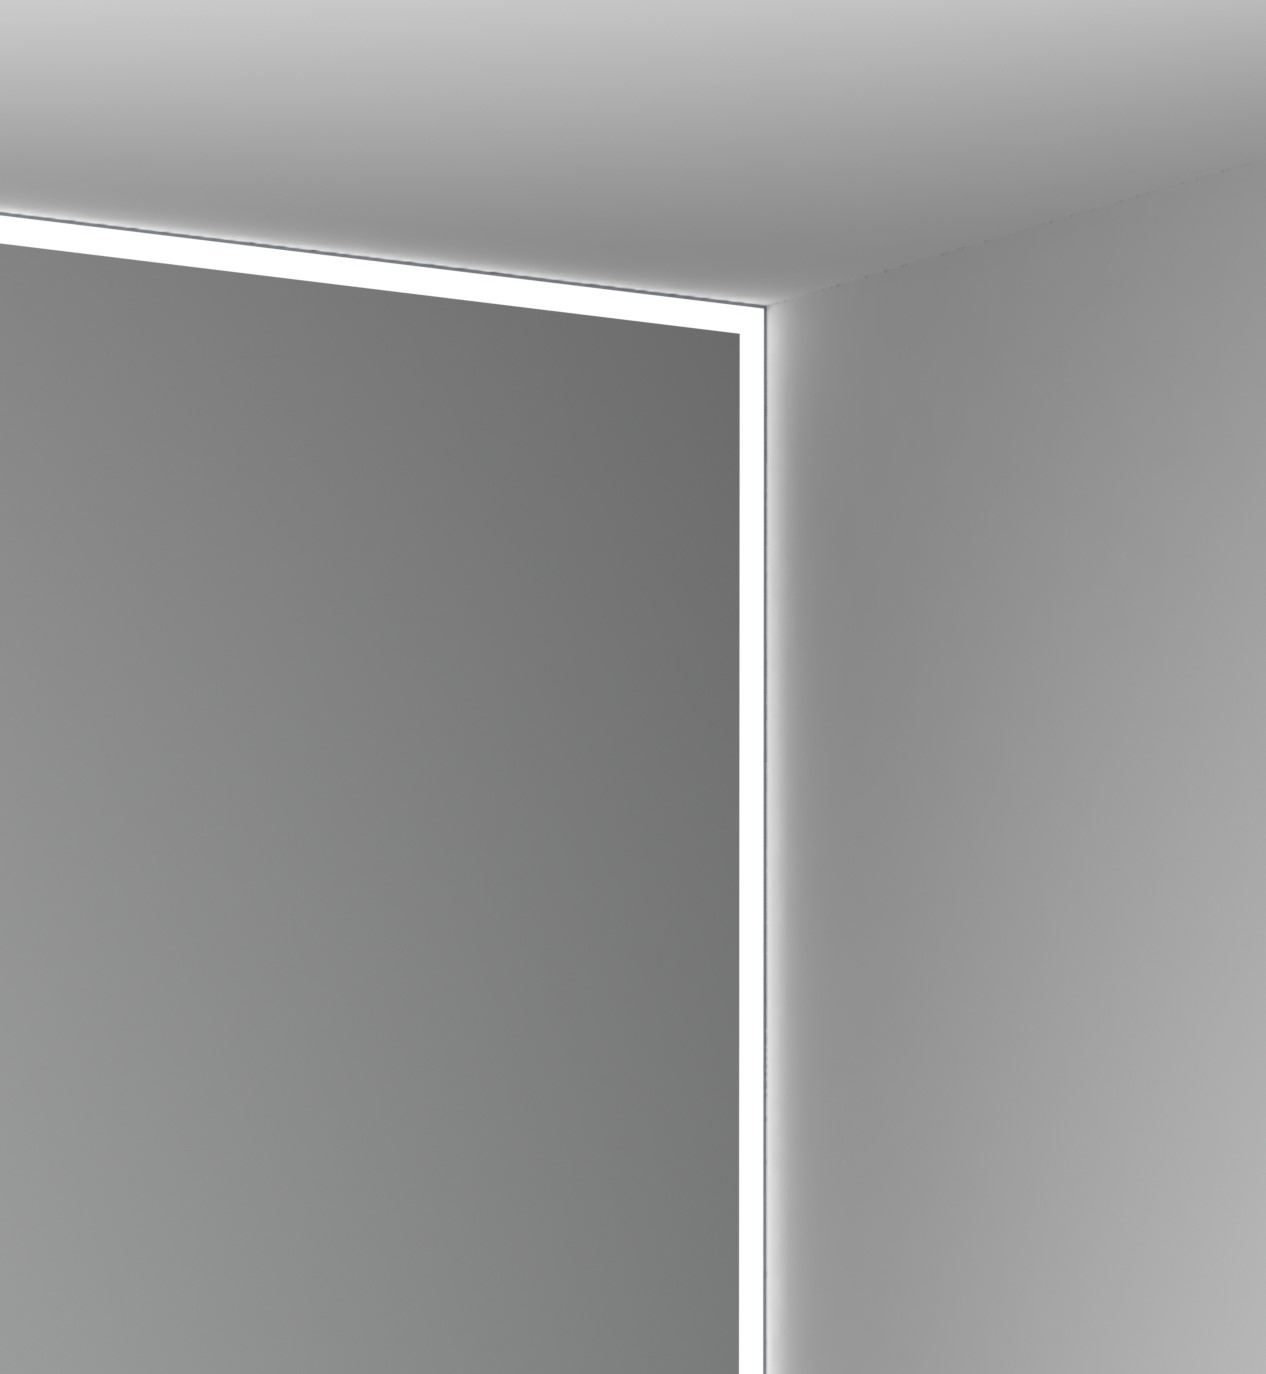 zenlite 1 inch perimeter lighting system for new construction 5 8 drywall walls ceilings